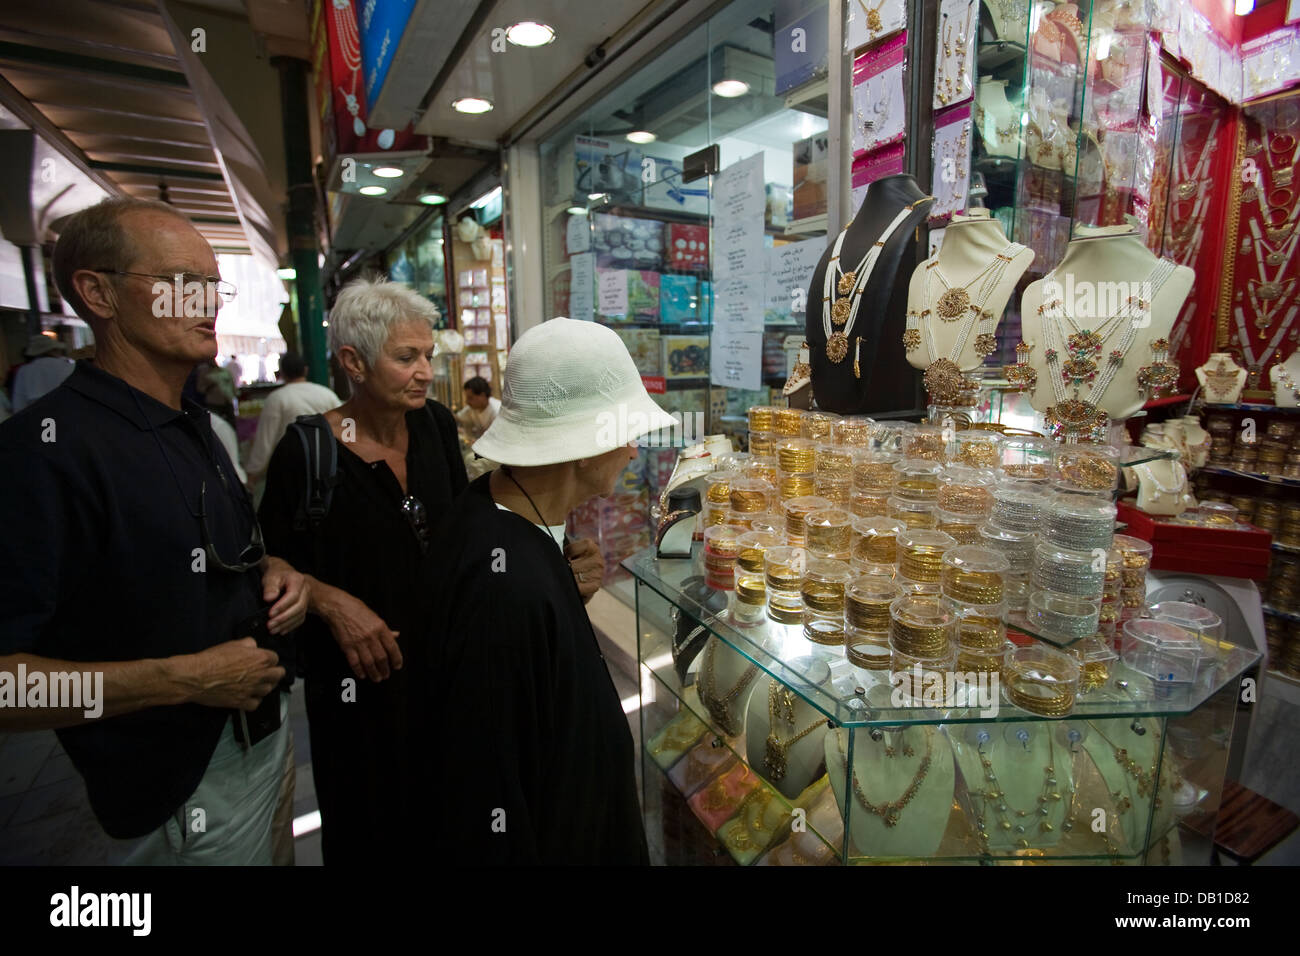 Gold and jewelery shops abound at Souq al-Alawi in Old